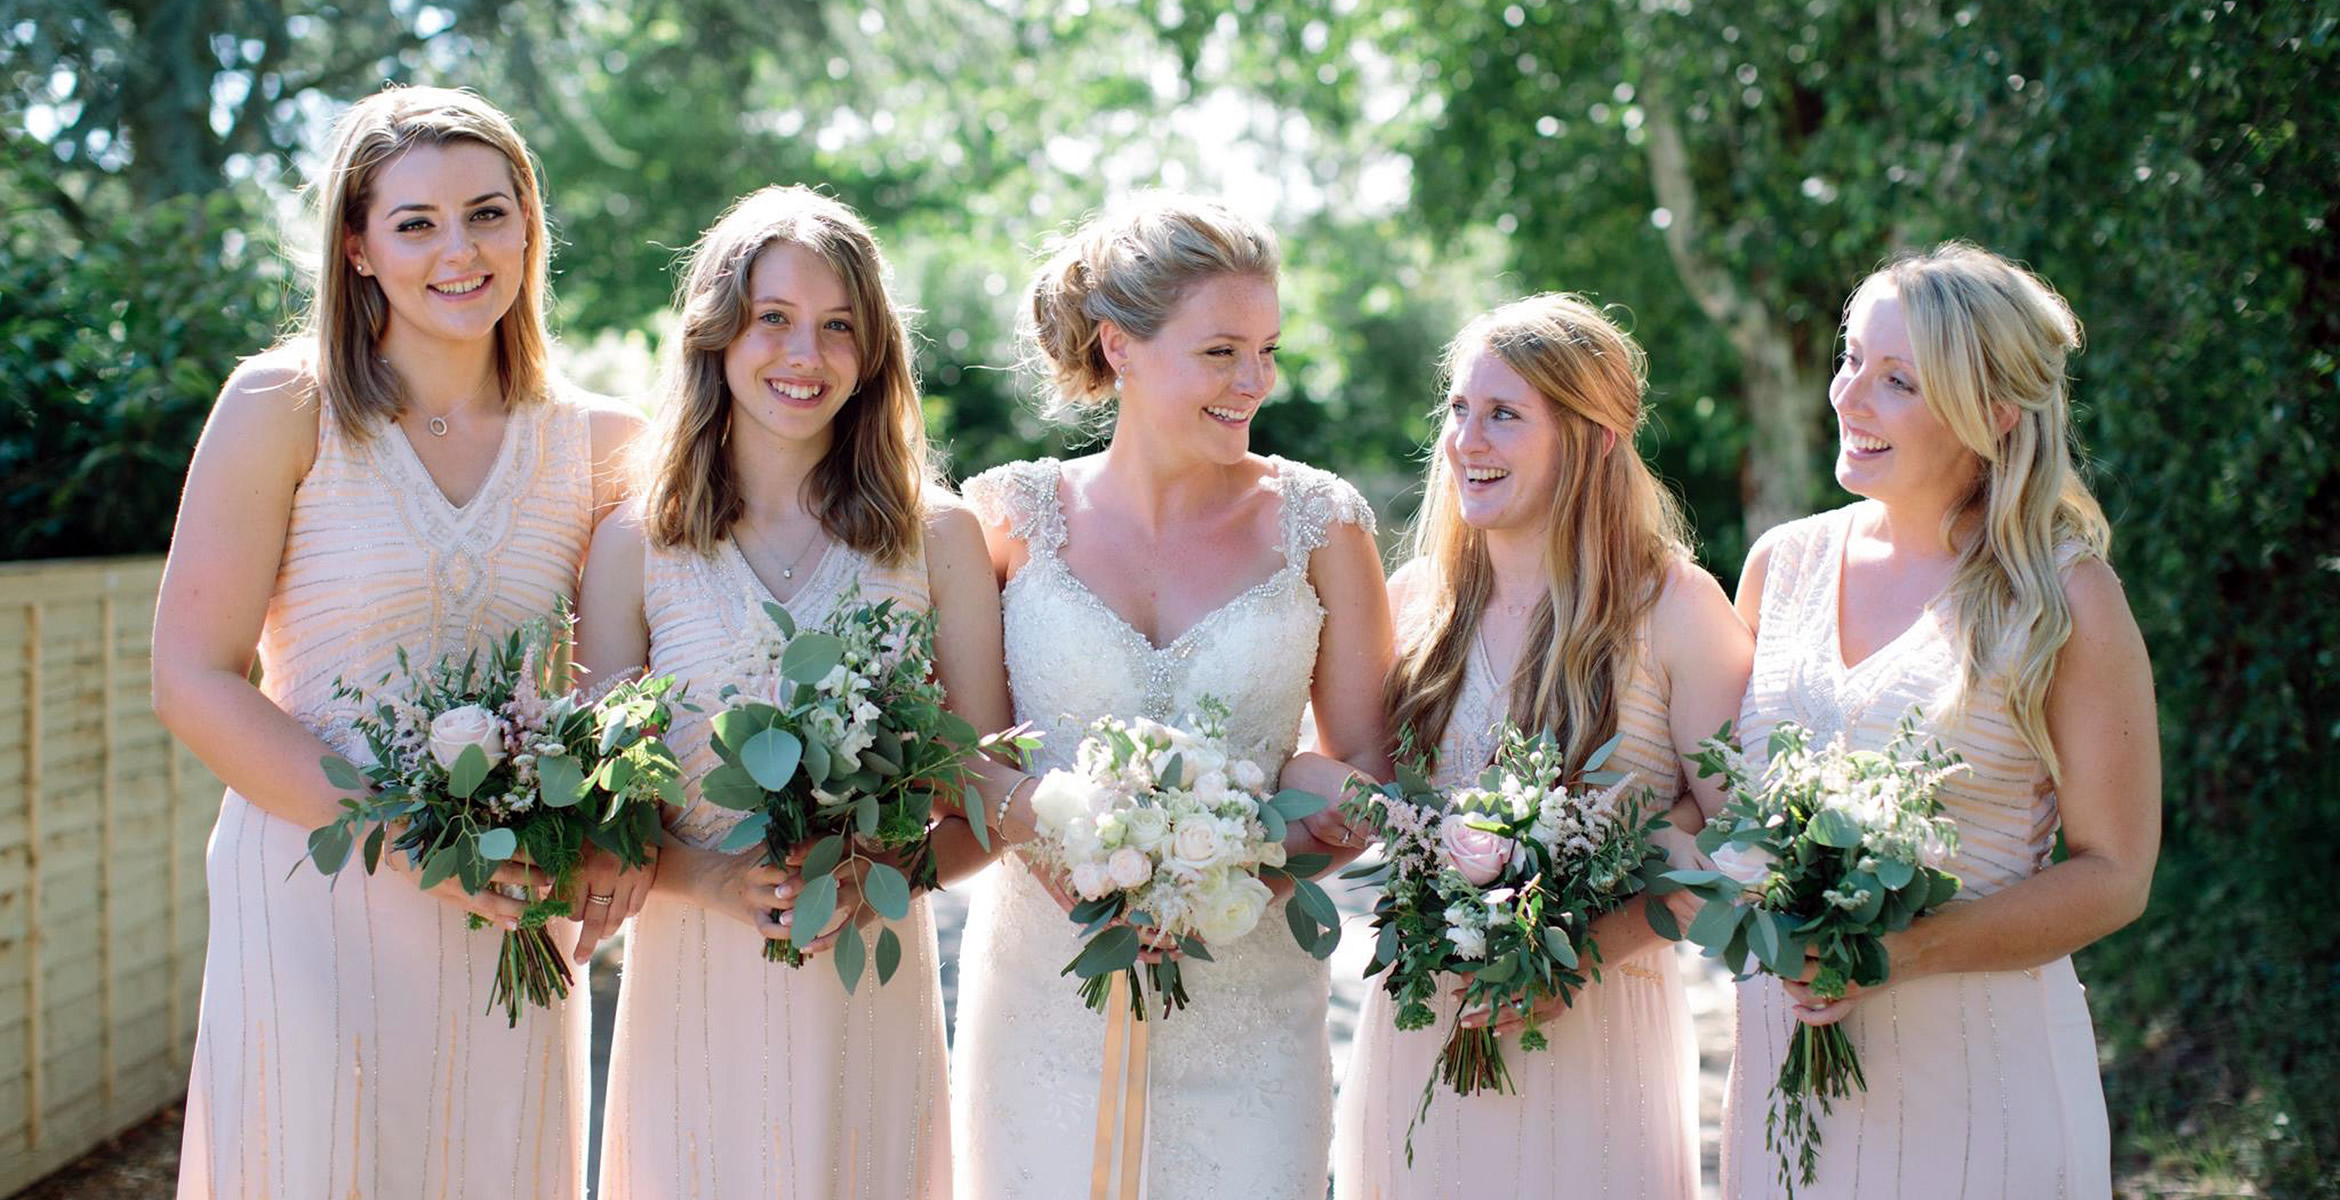 Cream & White Bridesmaids Bouquets from Driftwood Flowers, Chichester, West Sussex